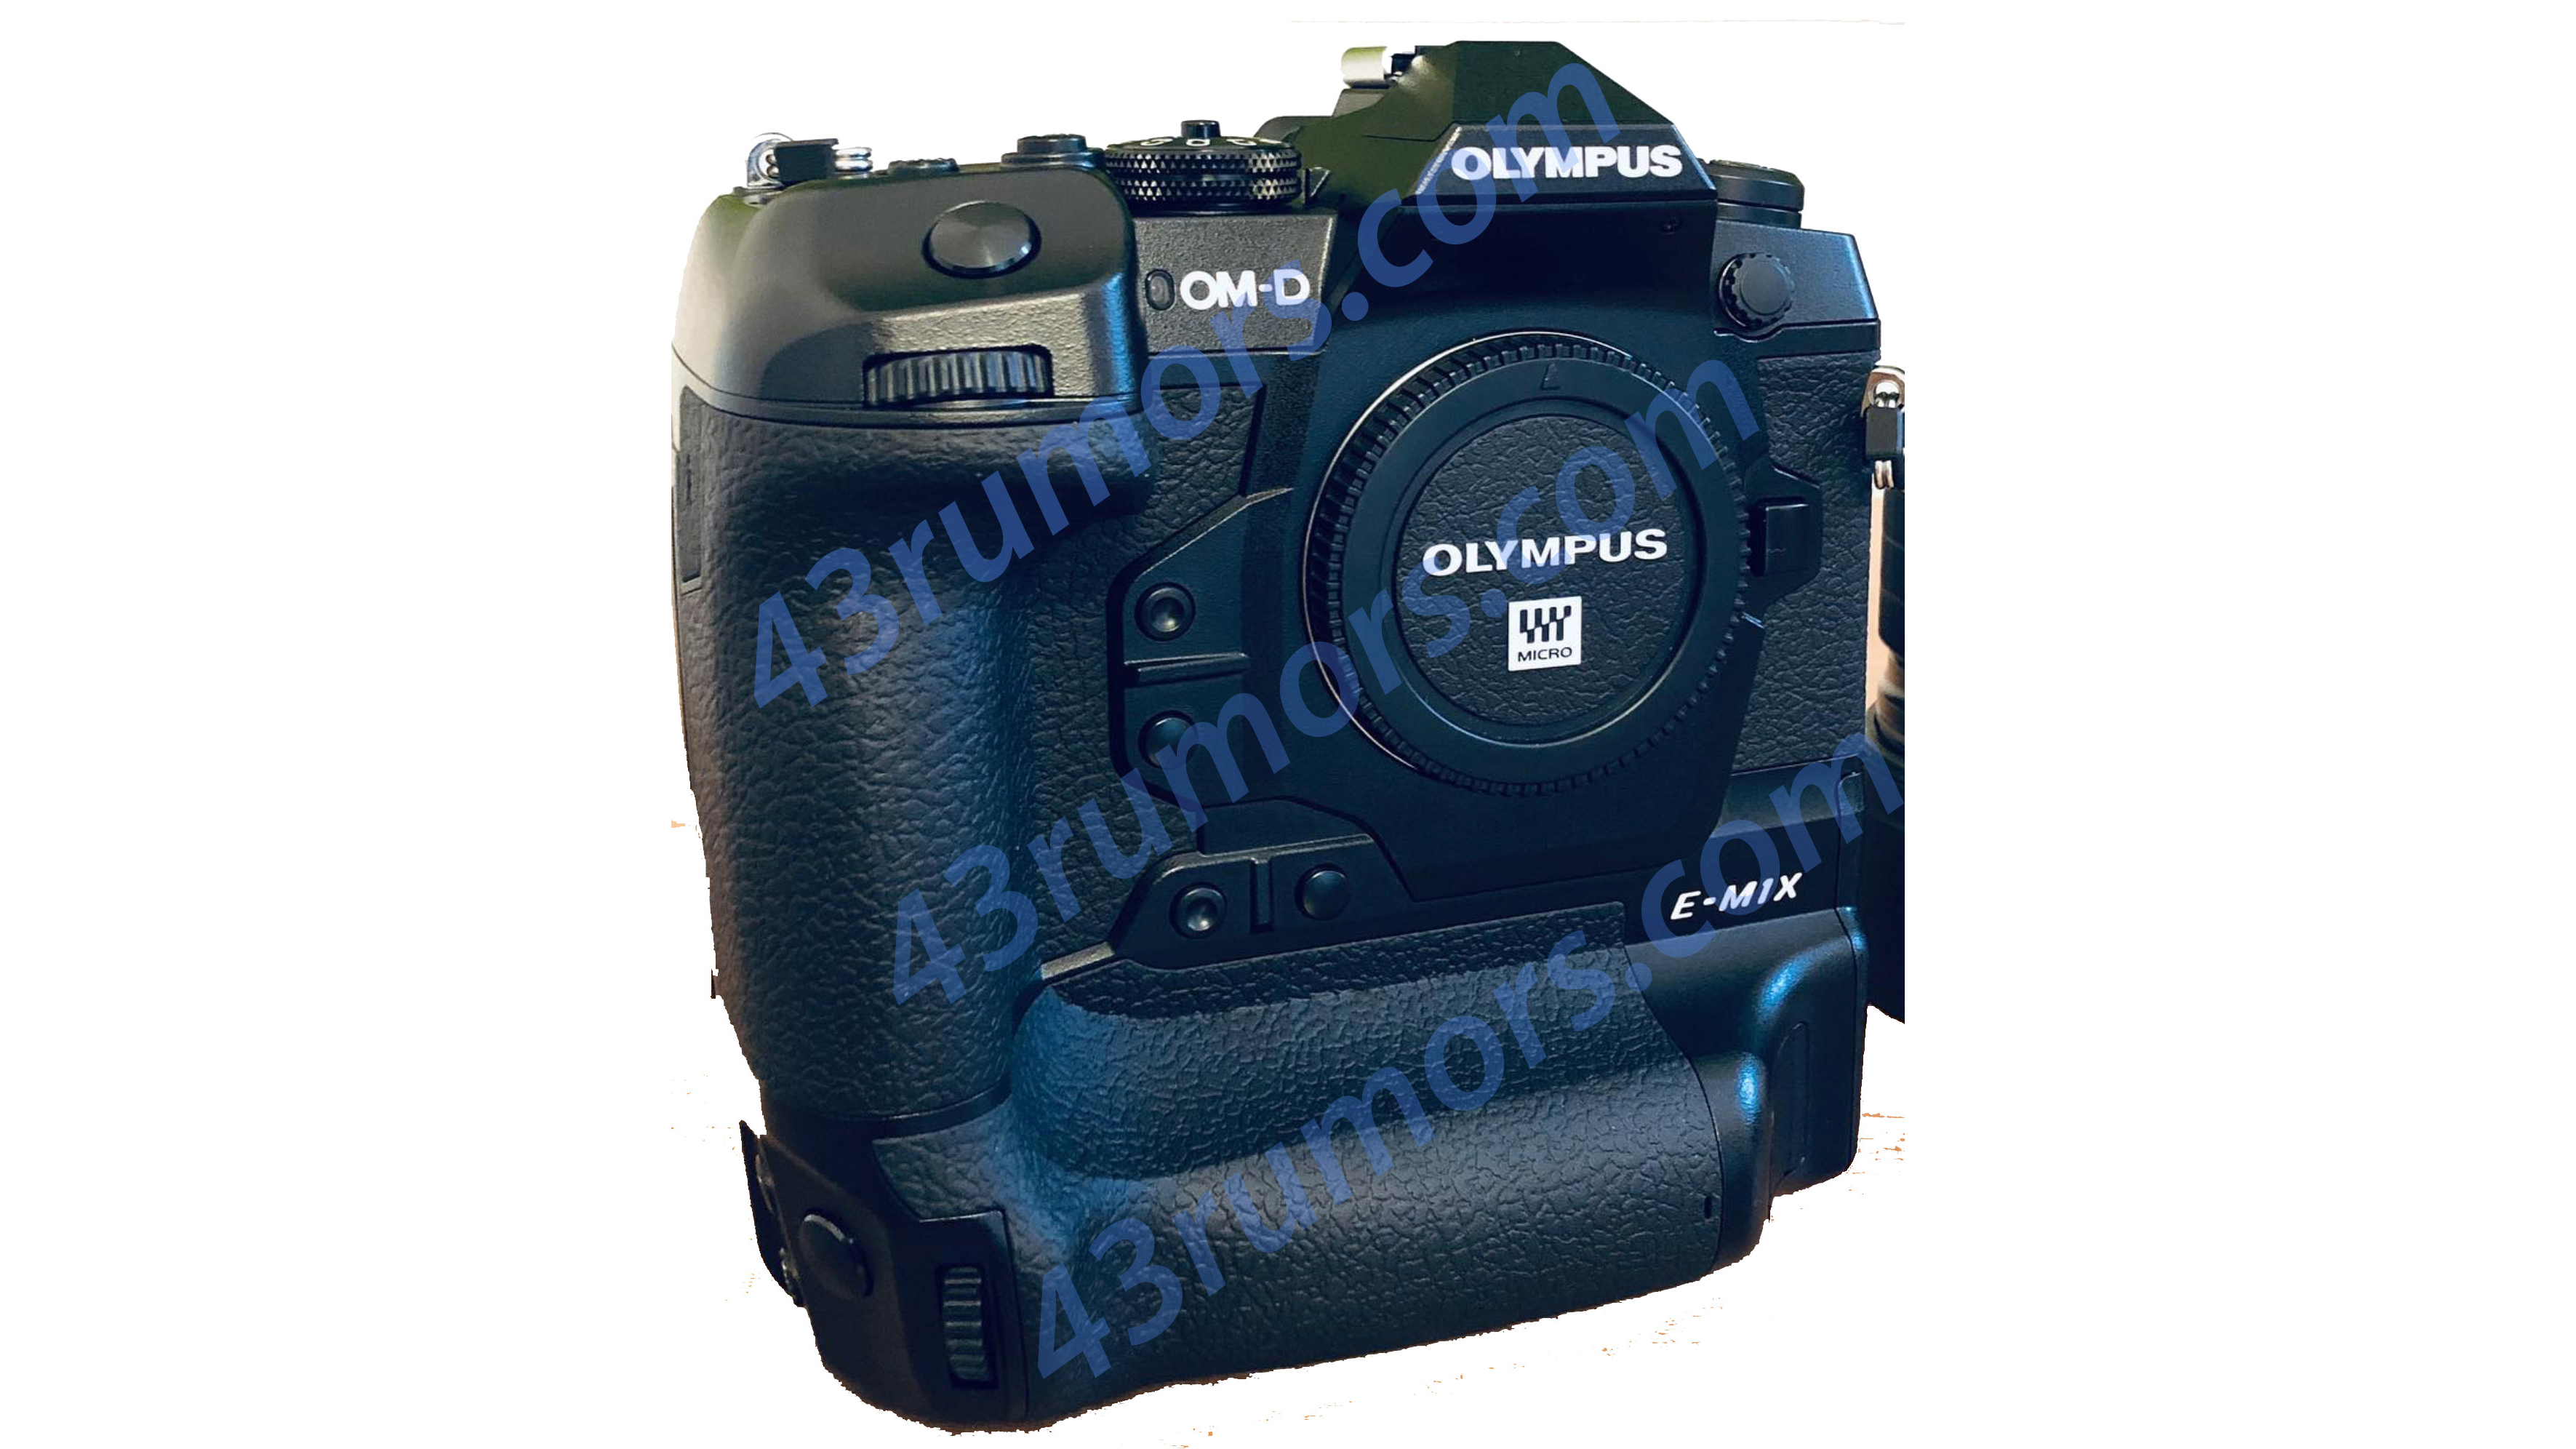 Is this the new Olympus OM-D E-M1X? | Digital Camera World